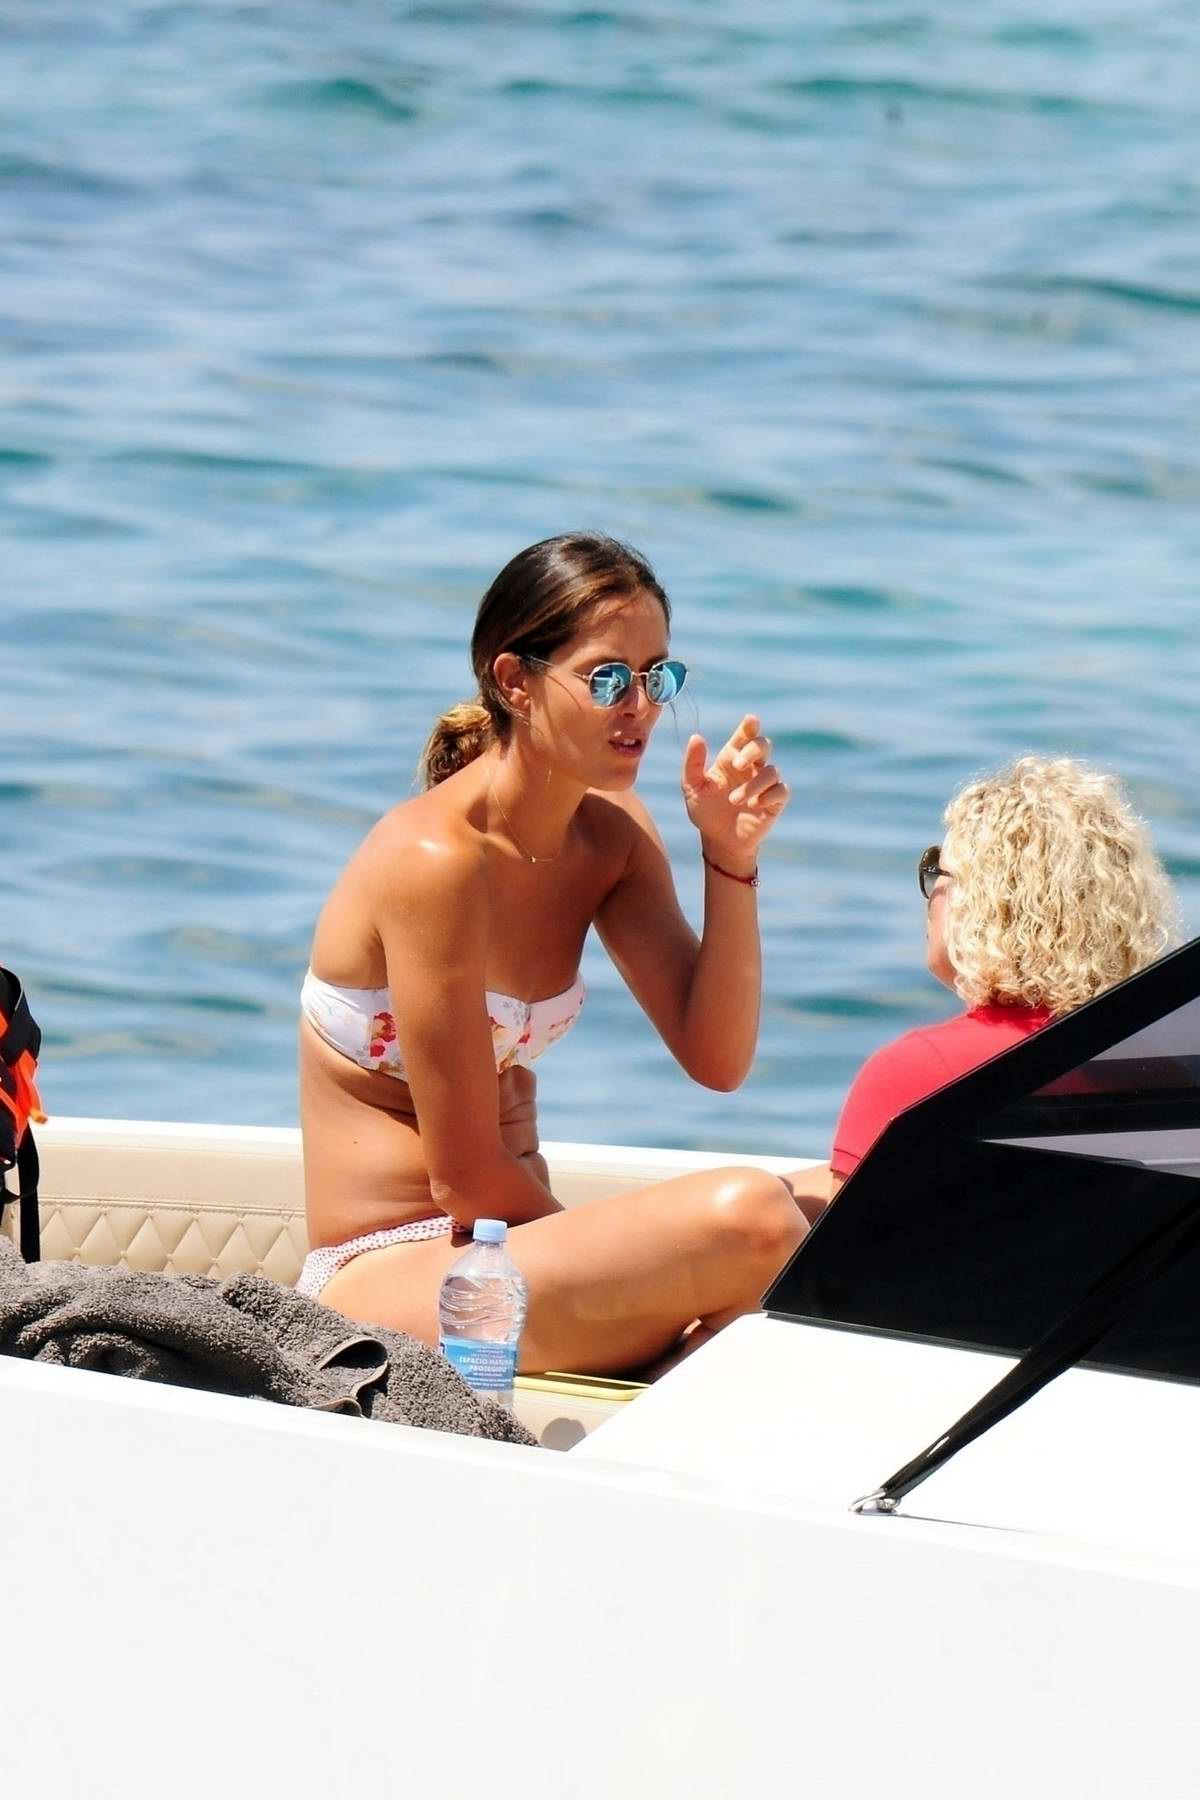 Ana Ivanovic spotted in a bikini while relaxing on a Luxury yacht with Bastian Schweinsteiger in Mallorca, Spain